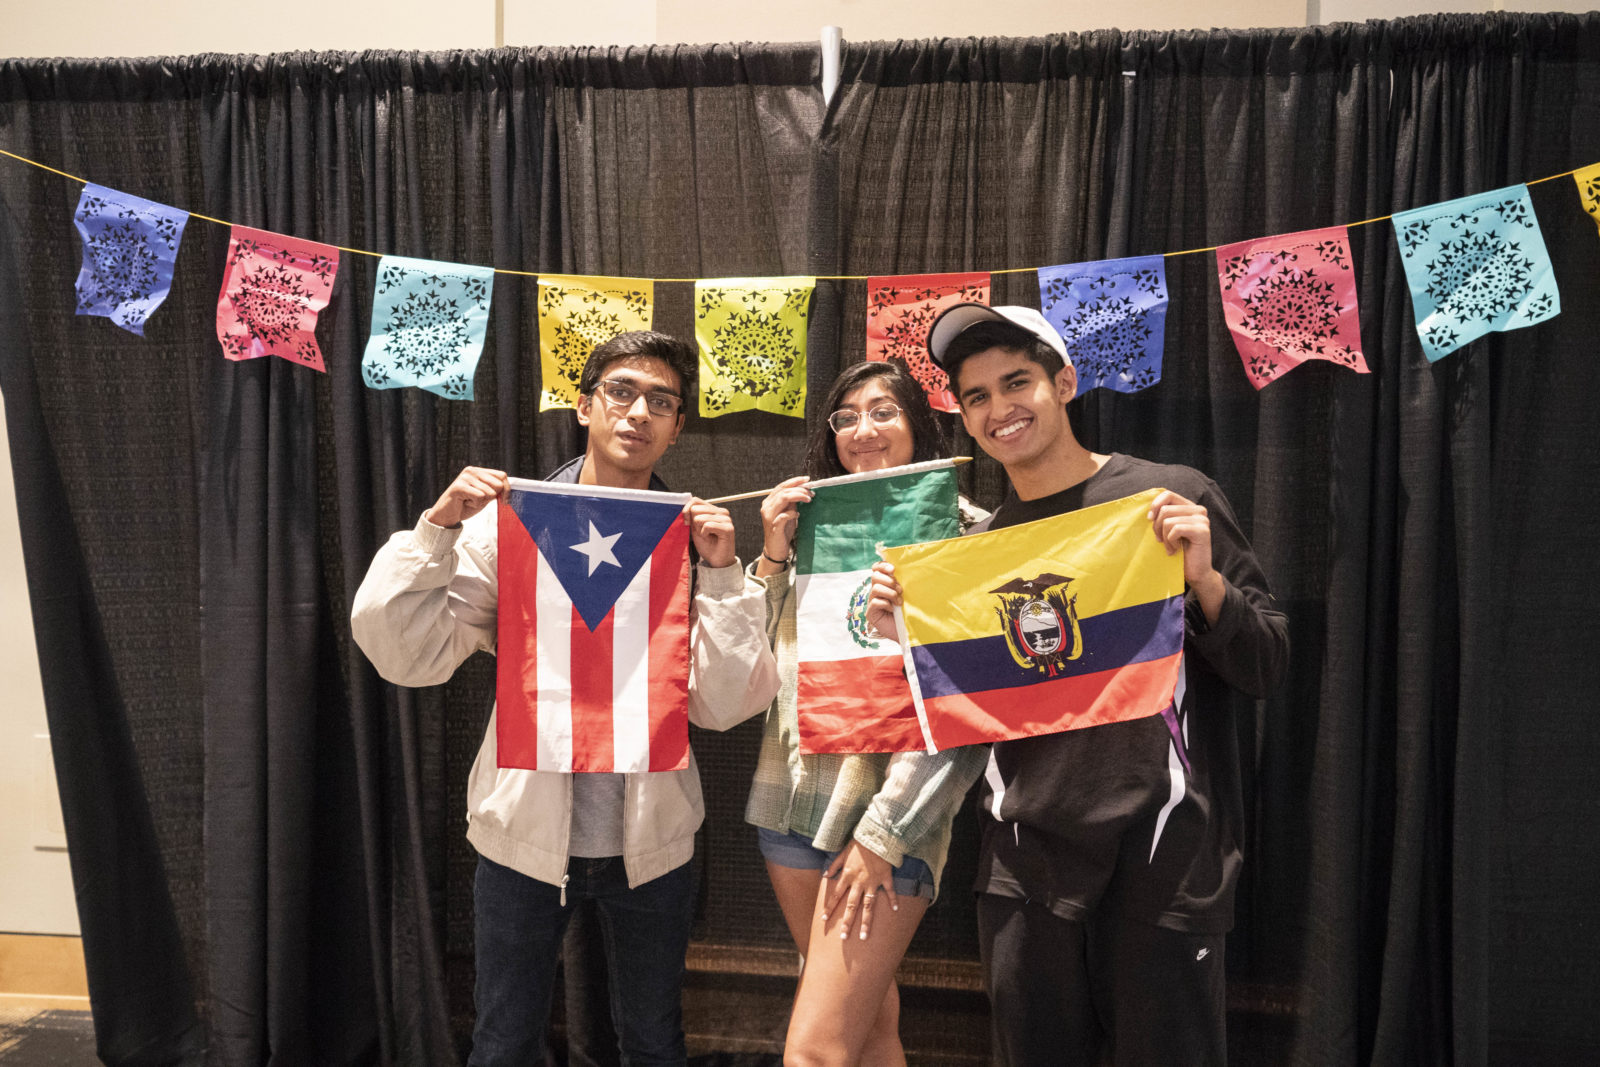 Students at Sabor Latino (Joe Howell/Vanderbilt University)